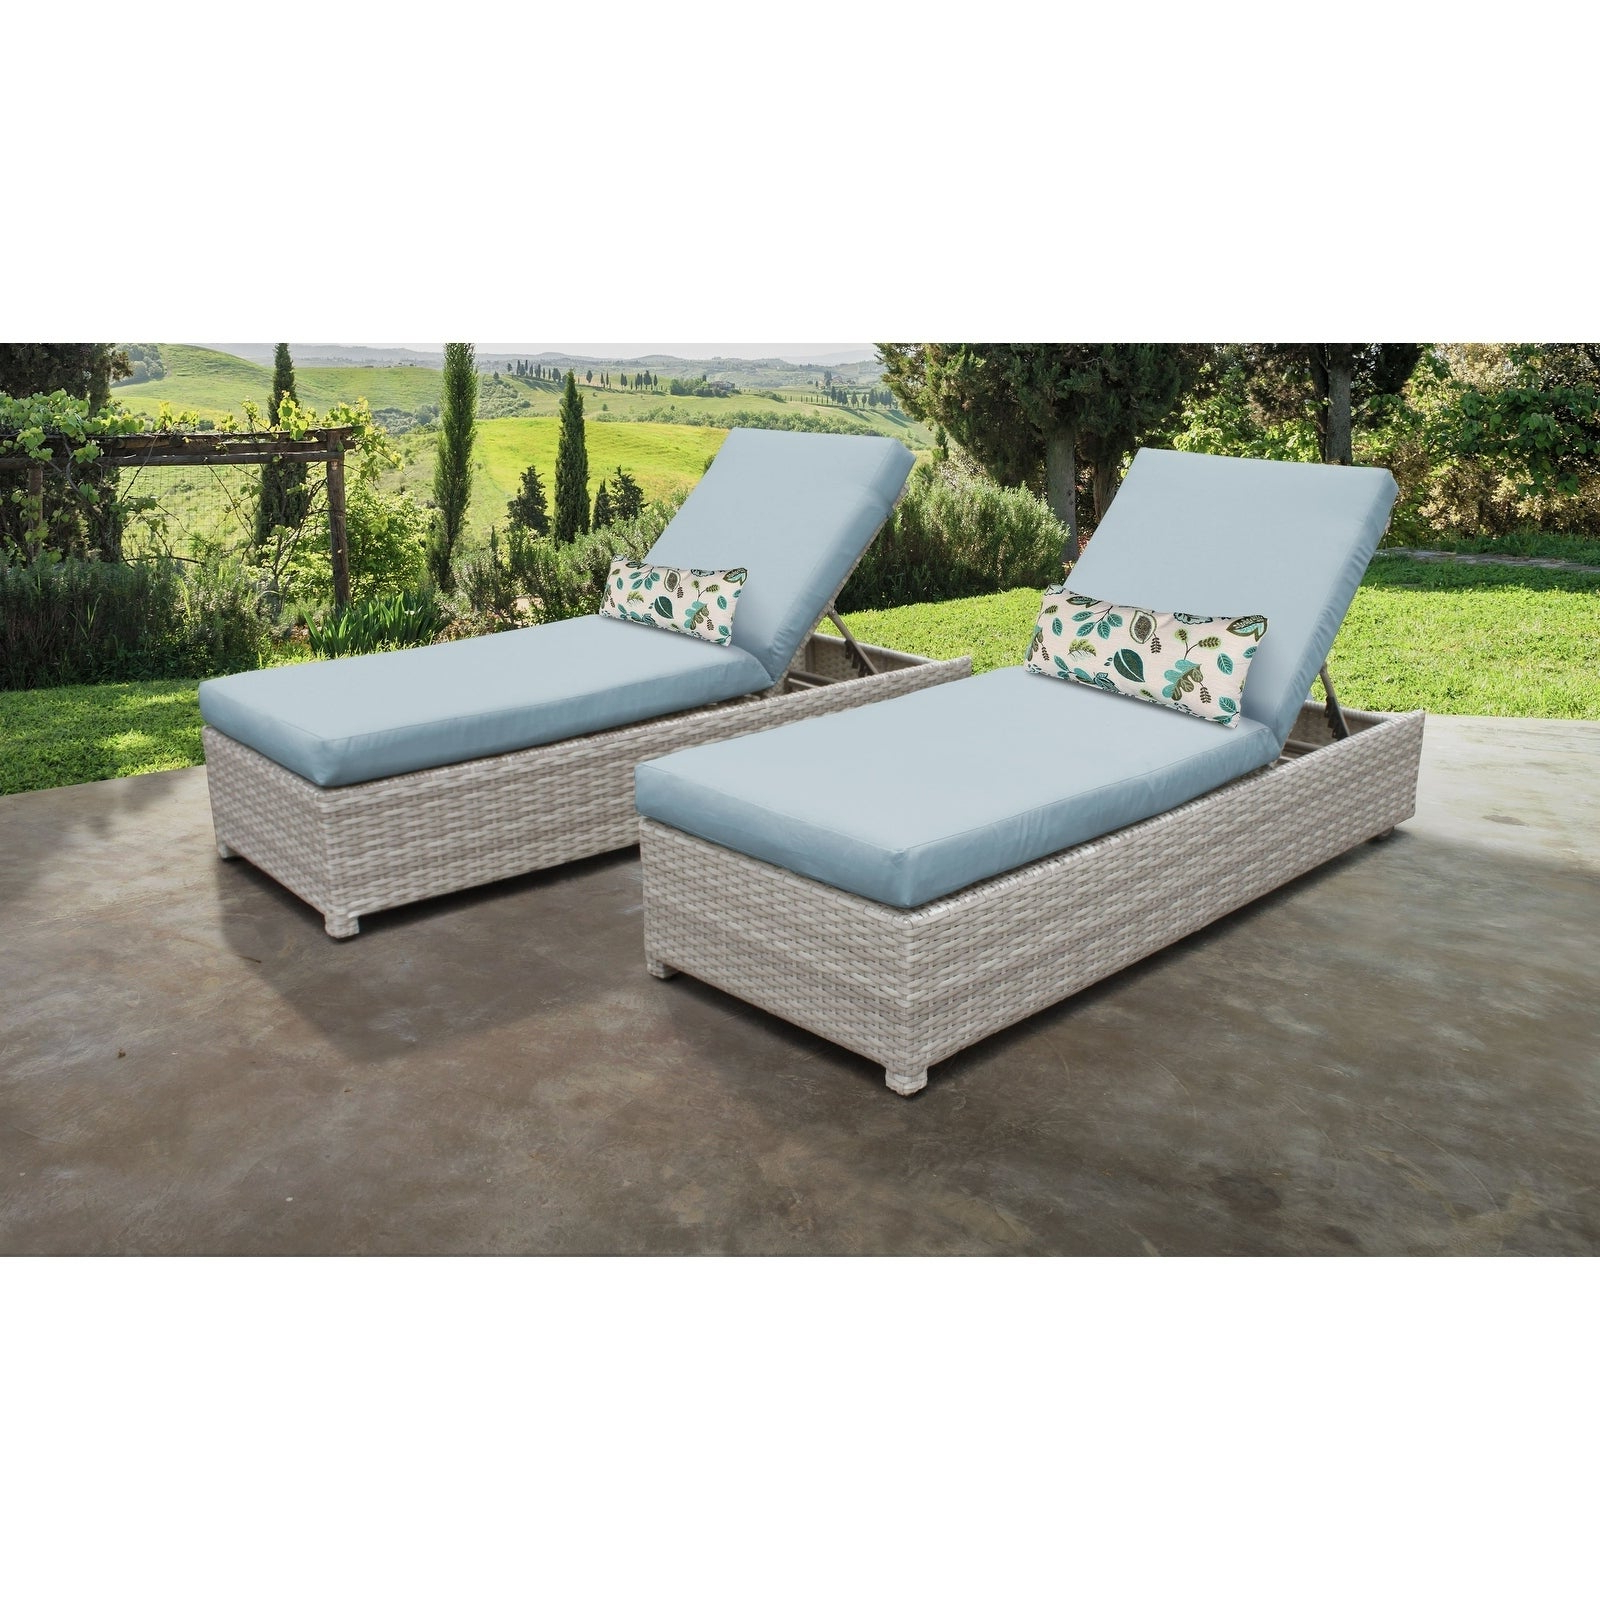 Havenside Home Cambridge Bay Chaise Lounges With Cushions In Most Up To Date Fairmont Wheeled Chaise Set Of 2 Outdoor Wicker Patio Furniture (View 6 of 25)